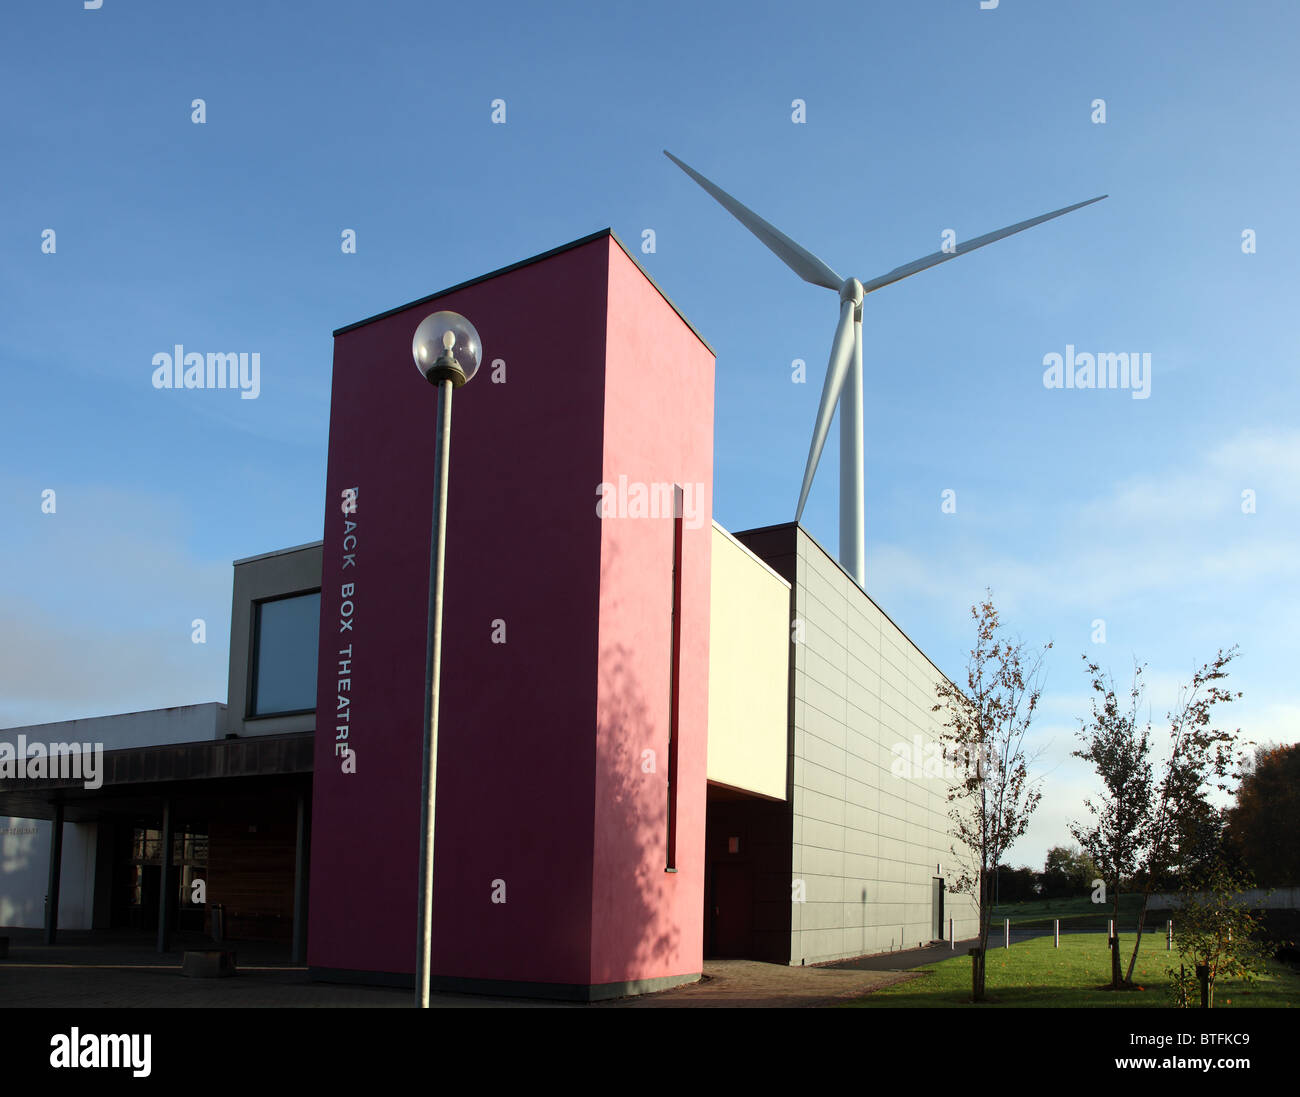 Black Box Theatre, Dundalk Institute of Technology - Stock Image